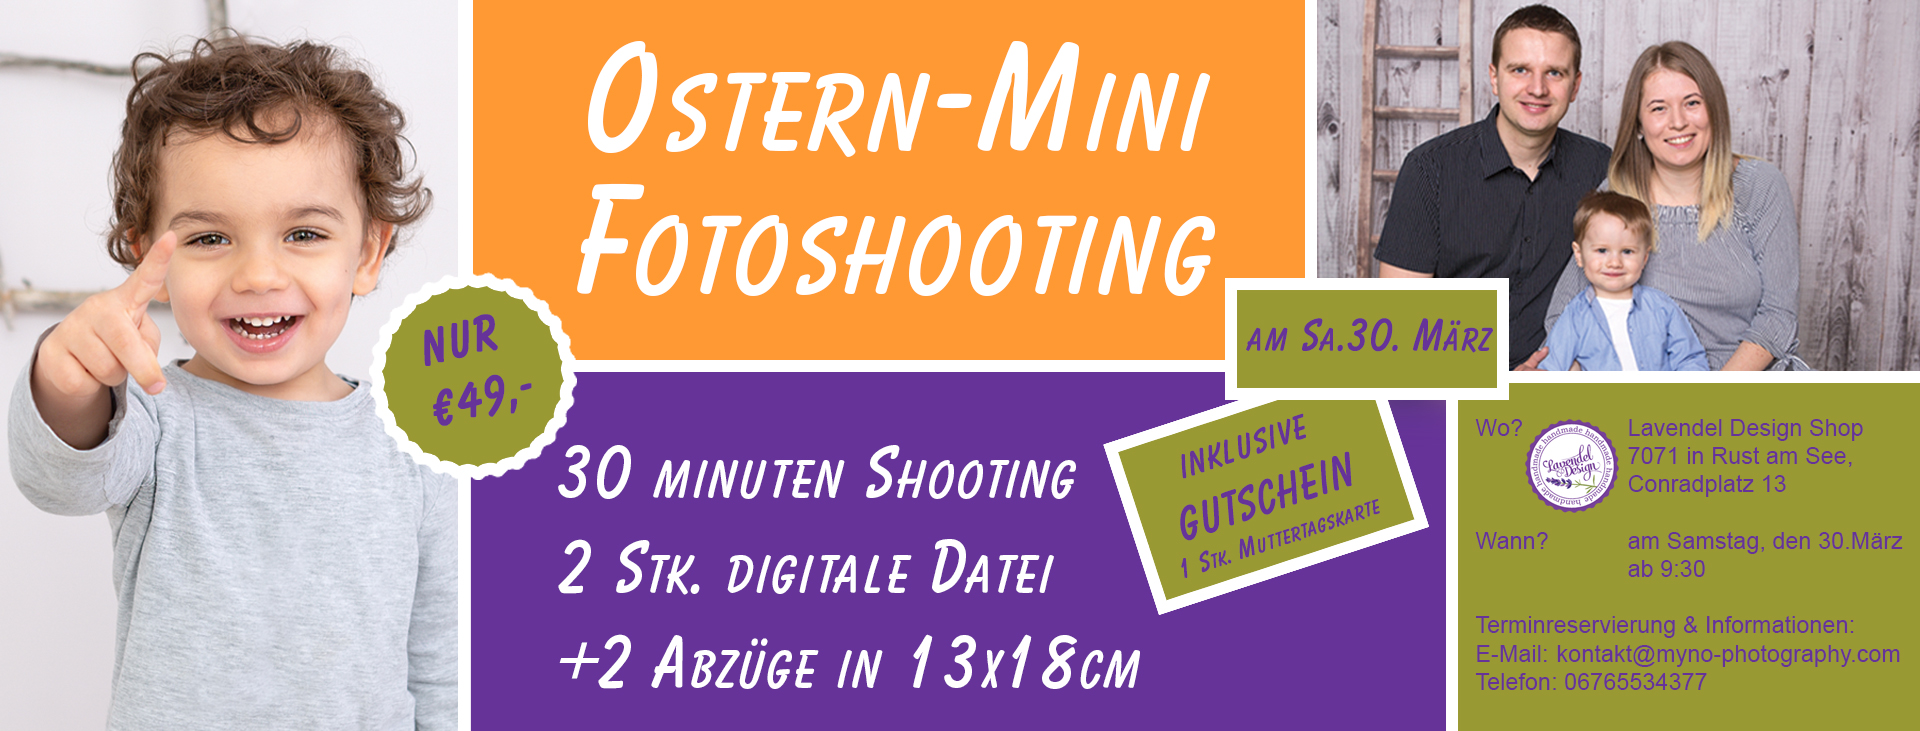 Ostern-Mini Fotoshooting